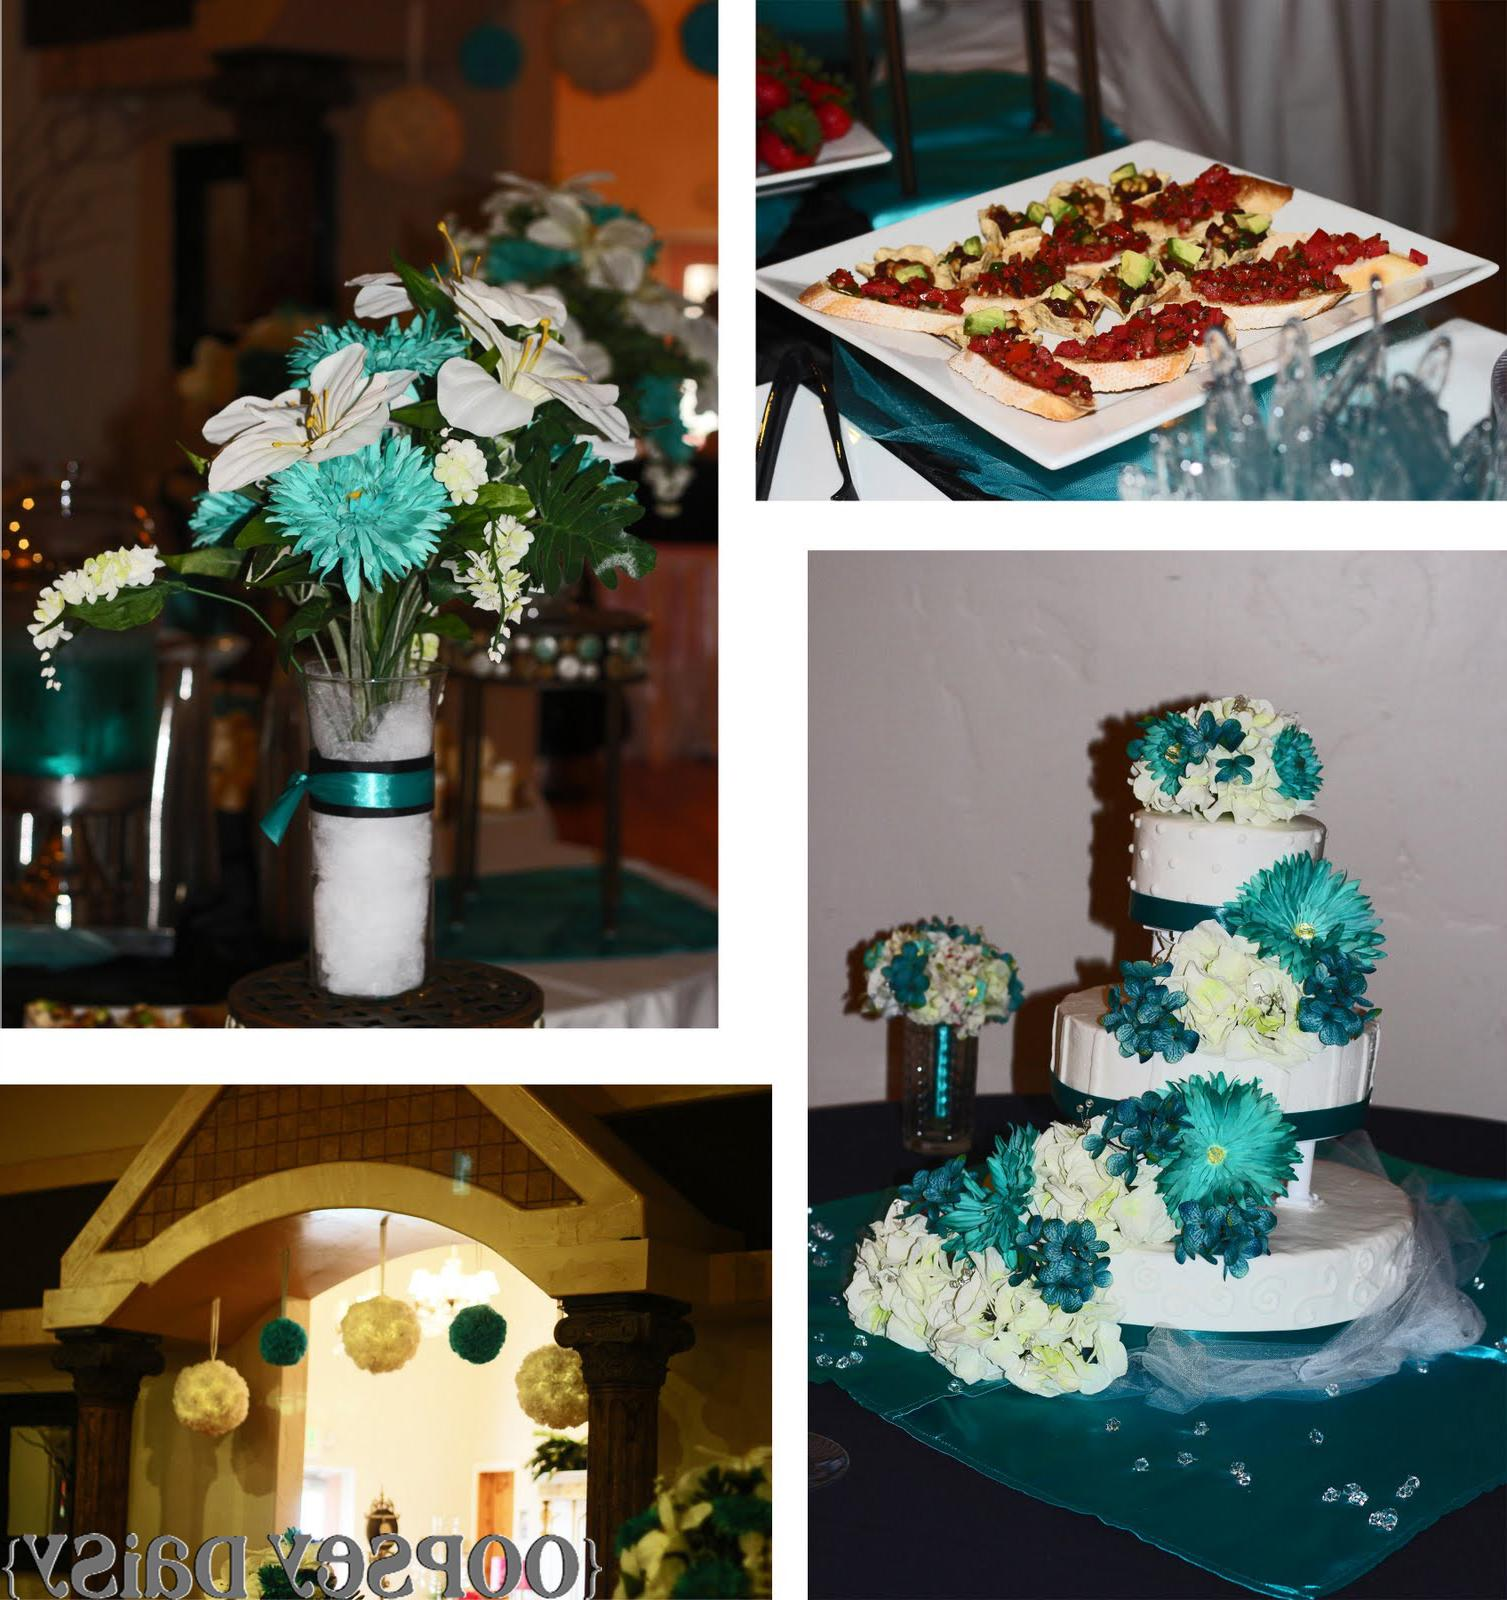 The reception was gorgeous.